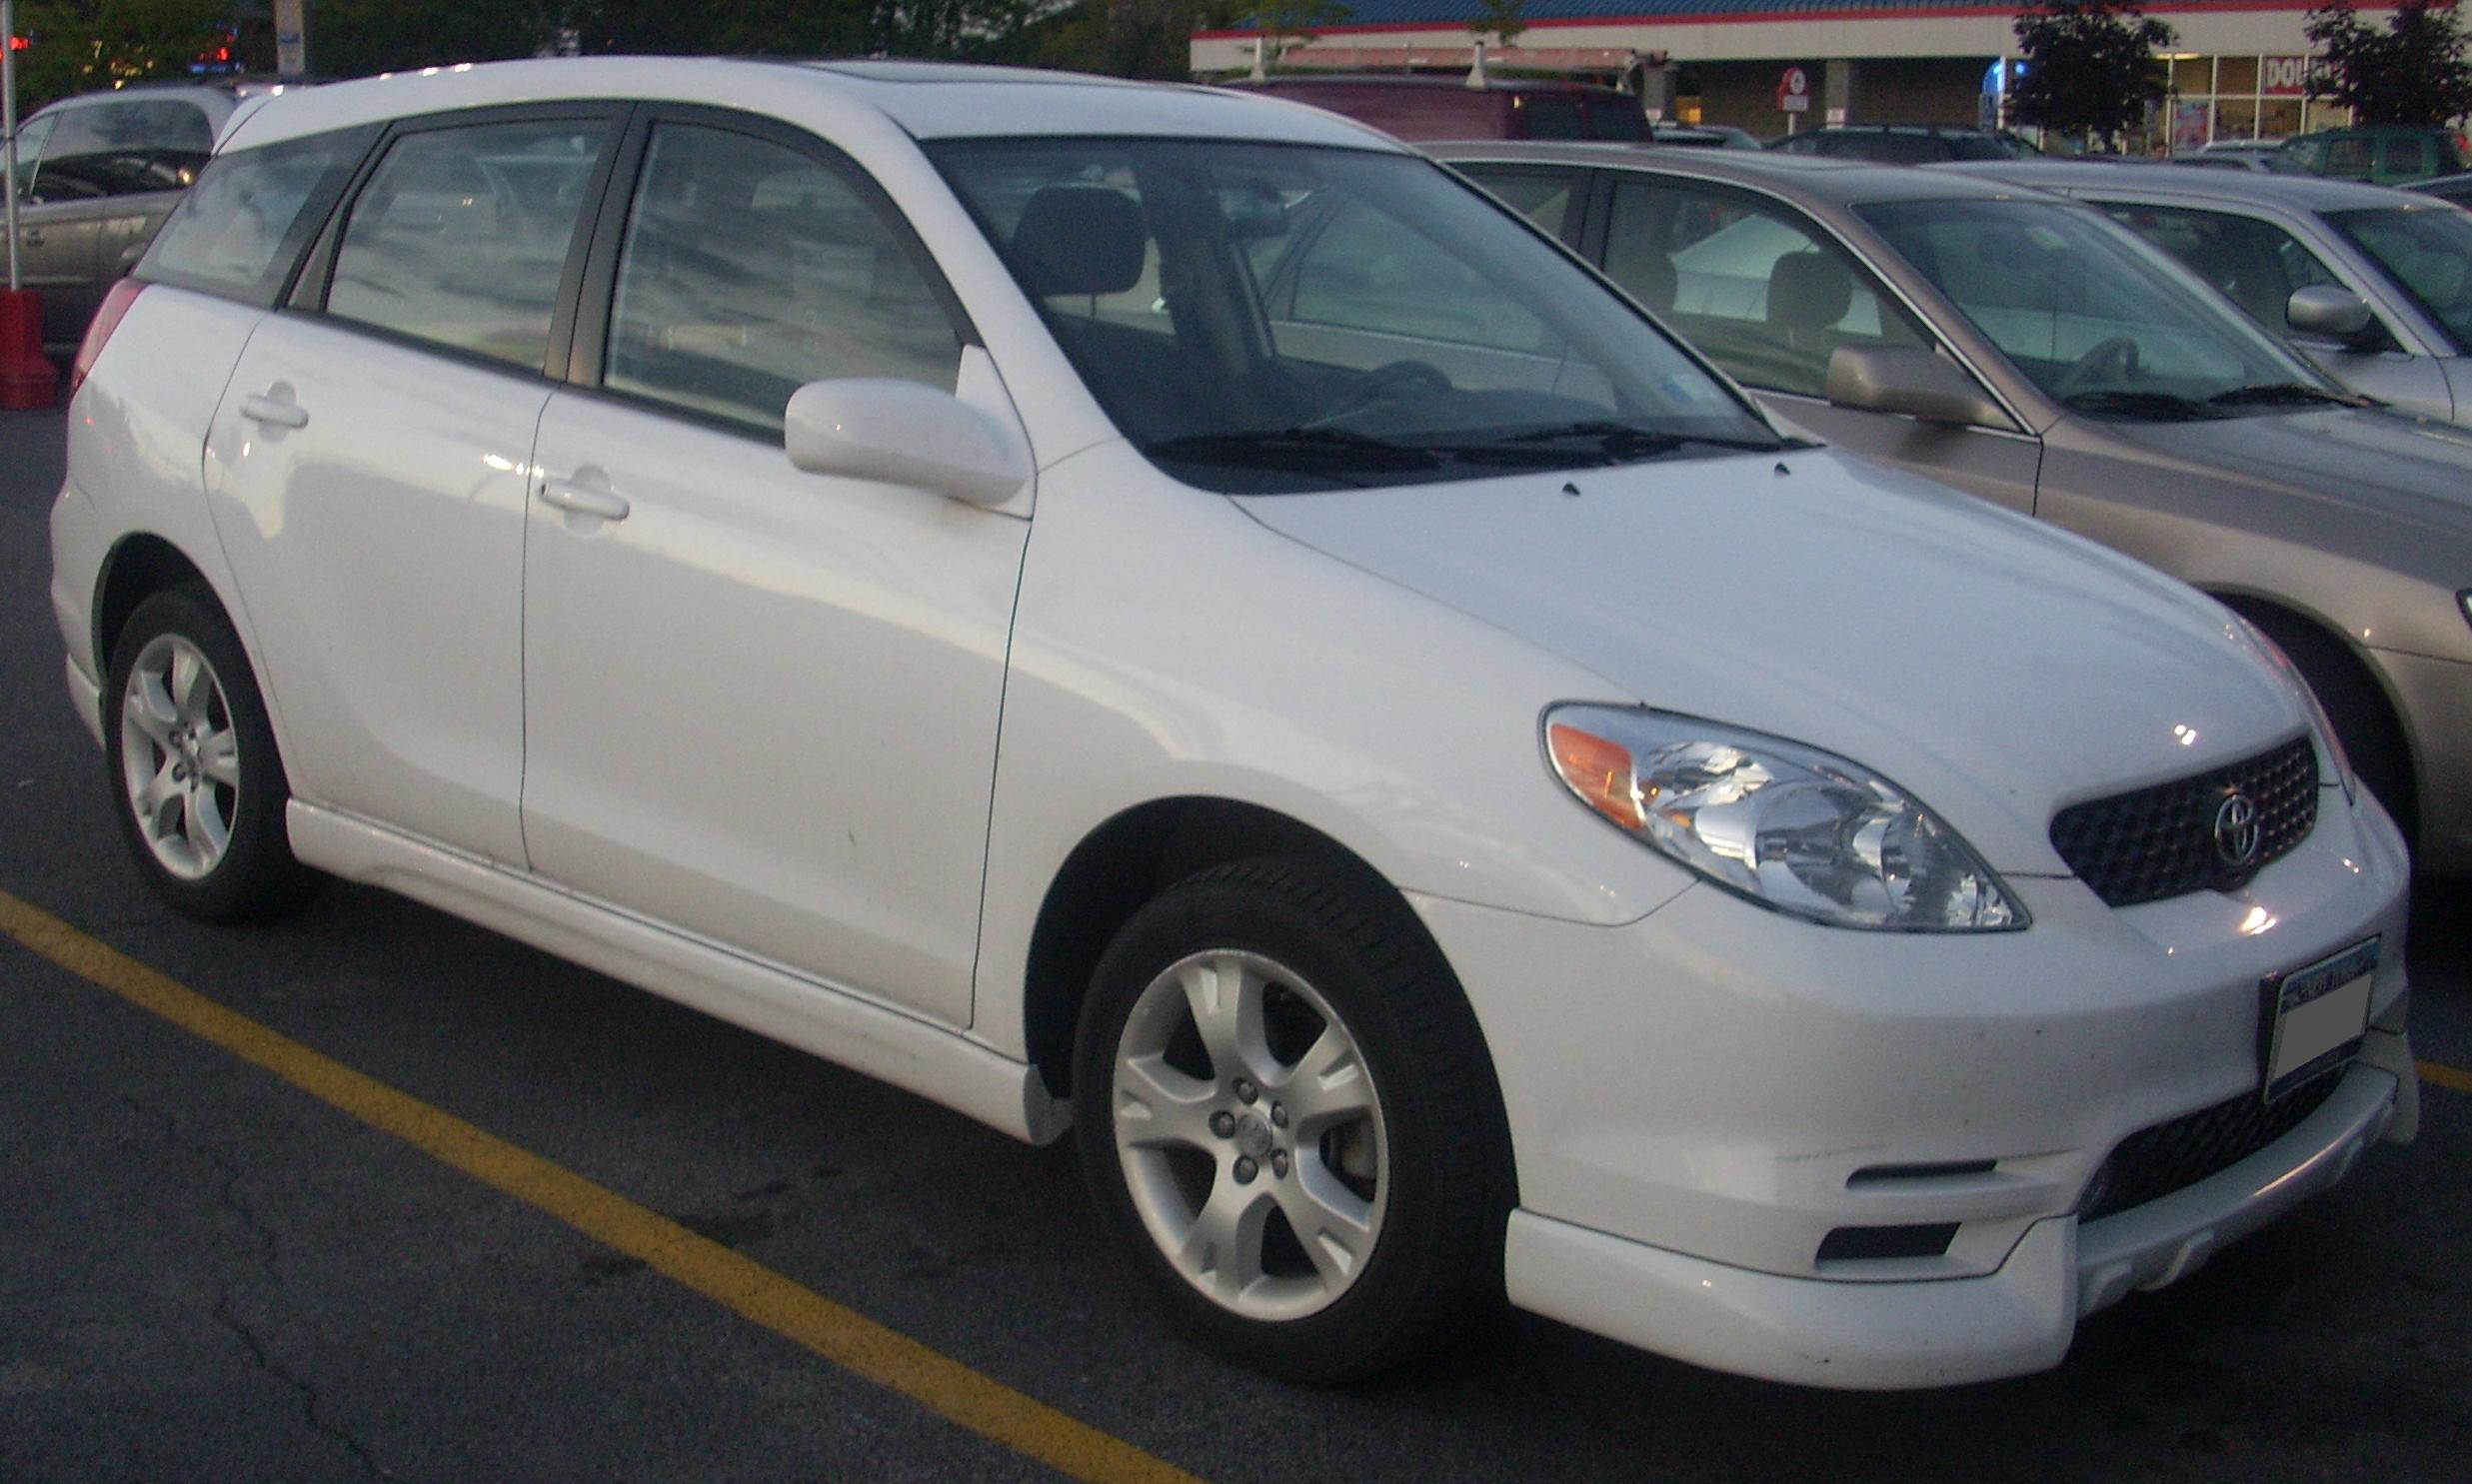 File:2003-04 Toyota Matrix Avenue.JPG - Wikimedia Commons